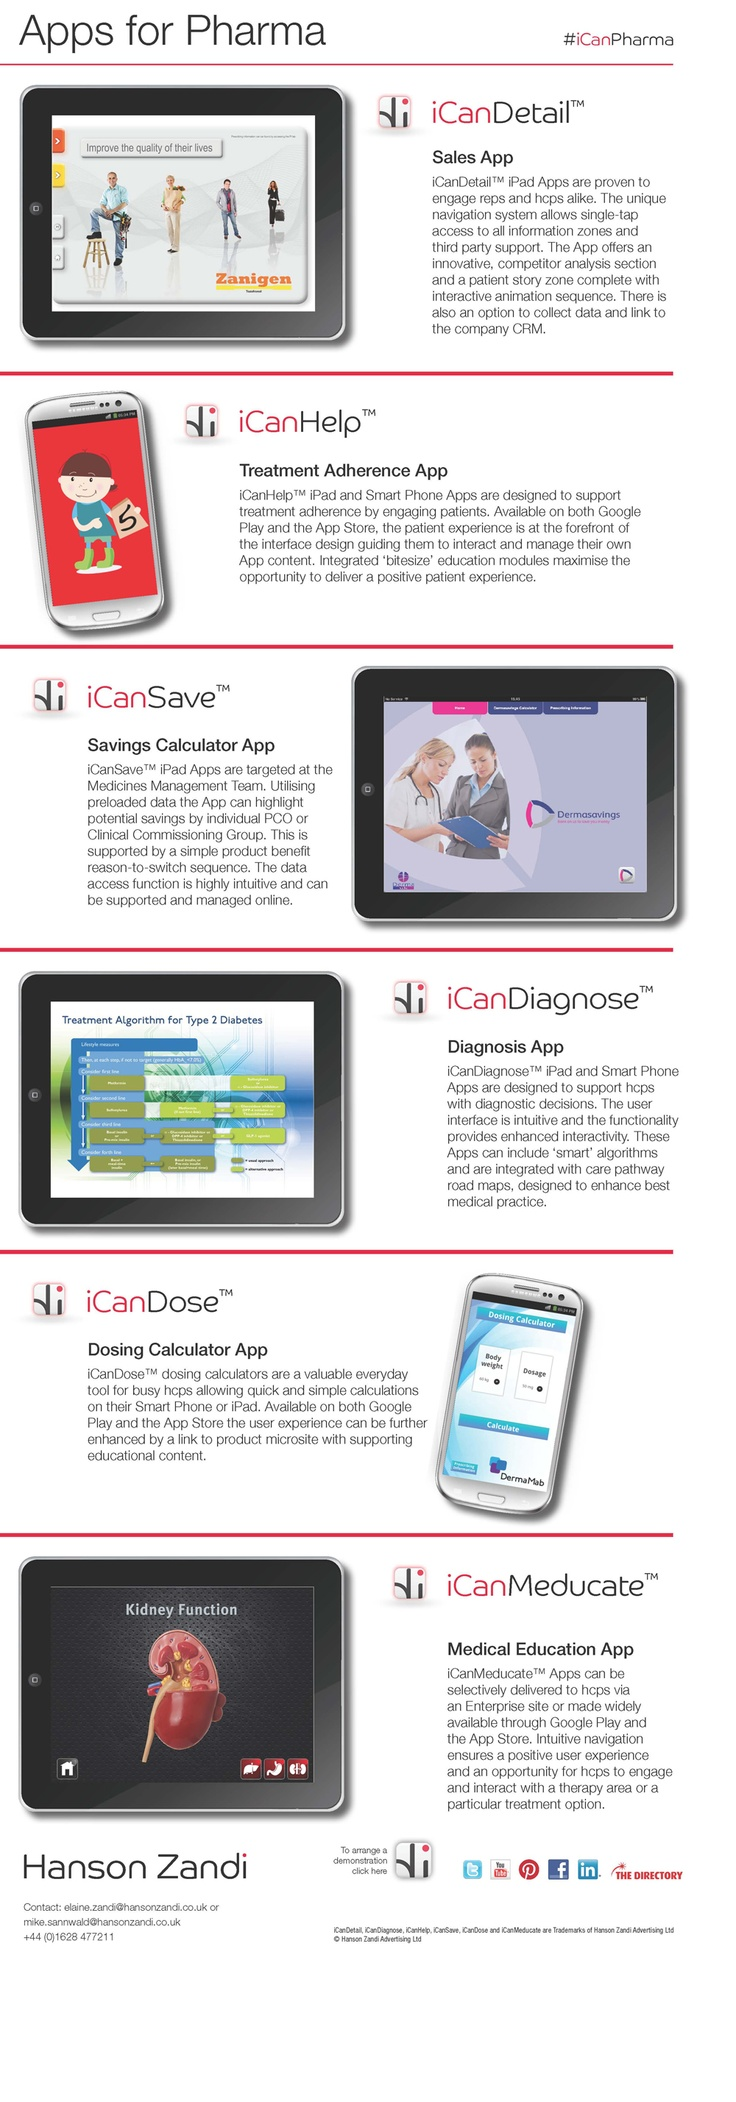 A range of pharma Apps by Hanson Zandi. Click the image for full size. #pharma #digital #iCanPharma #healthcare #Apps #mobile